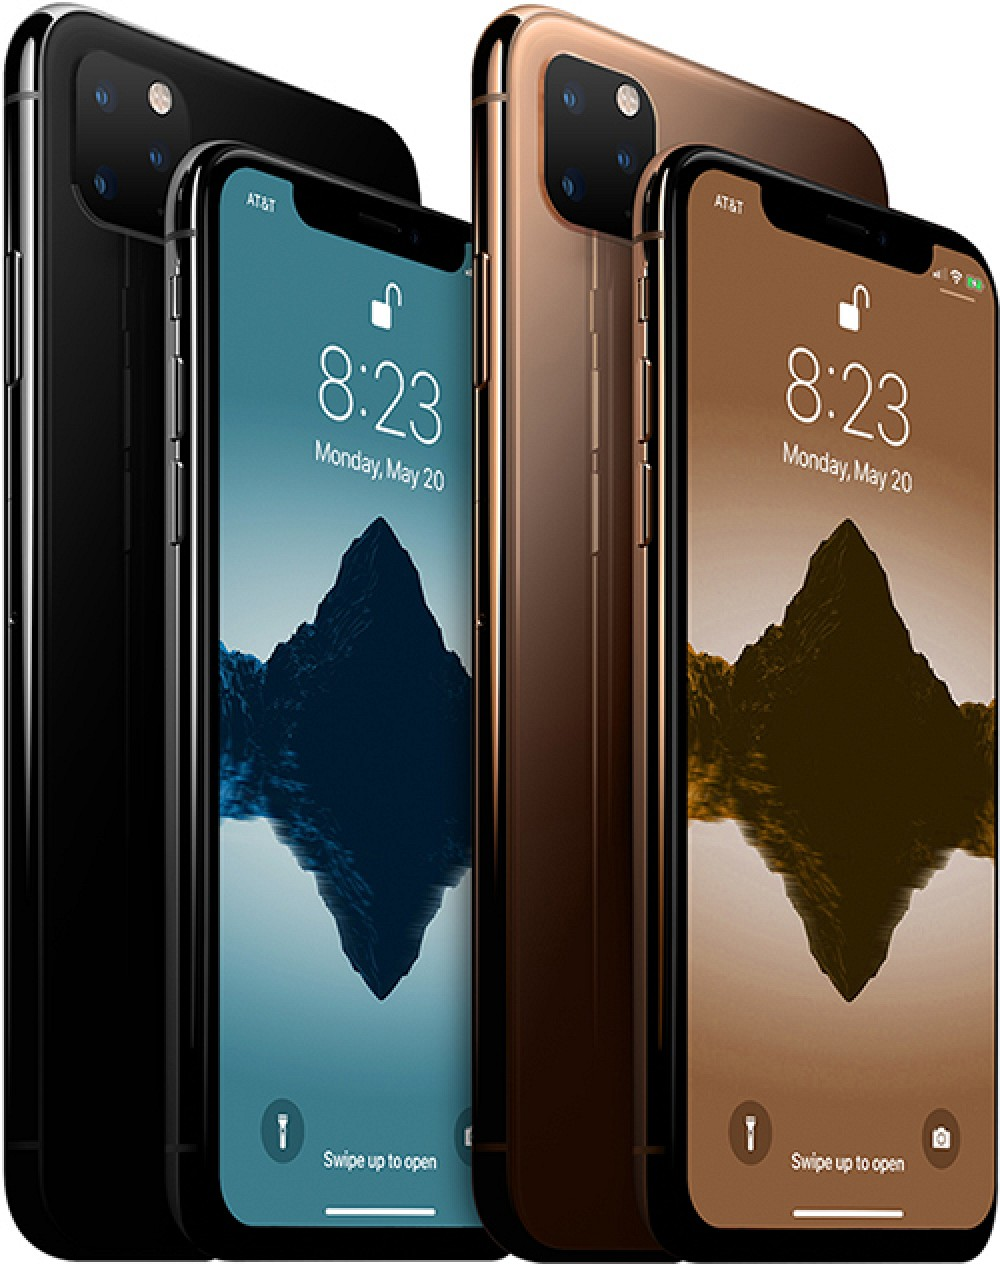 Best Iphone Se Case 2020 2020 iPhones May Have Full Screen Touch ID, New iPhone SE Based on